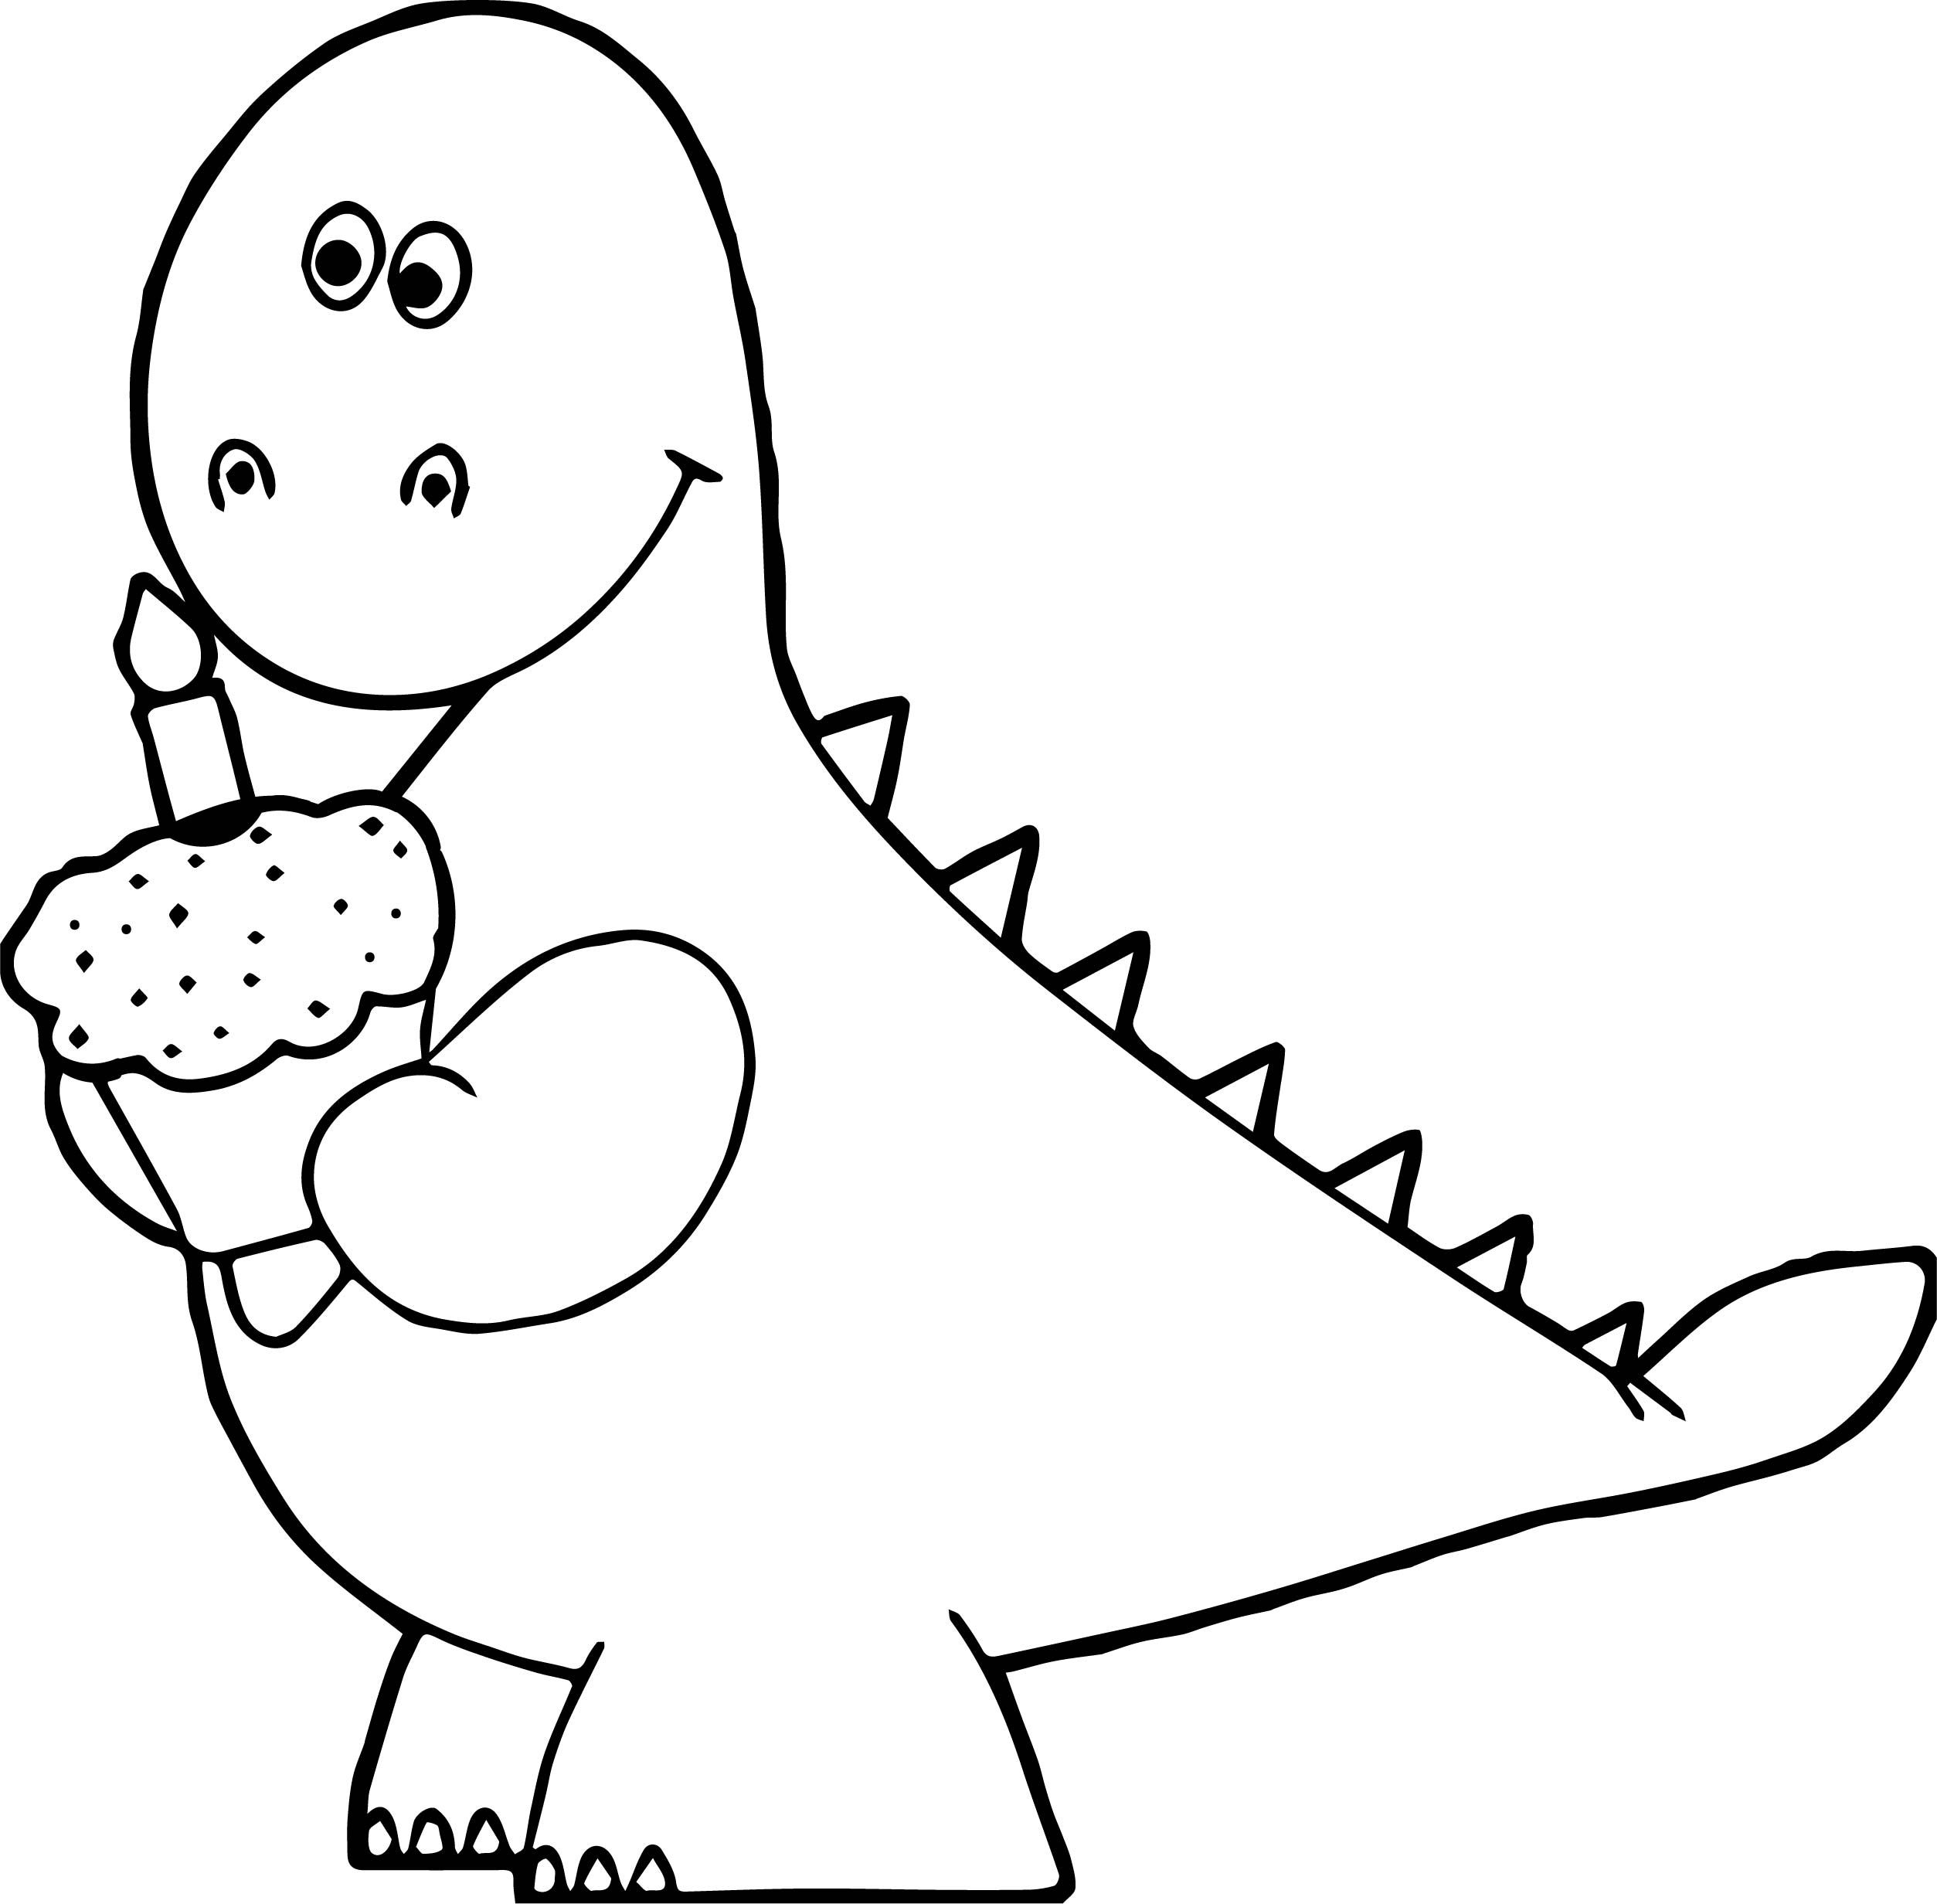 dinosaur happy birthday coloring pages happy birthday dinosaur coloring page dinosaur coloring birthday pages happy